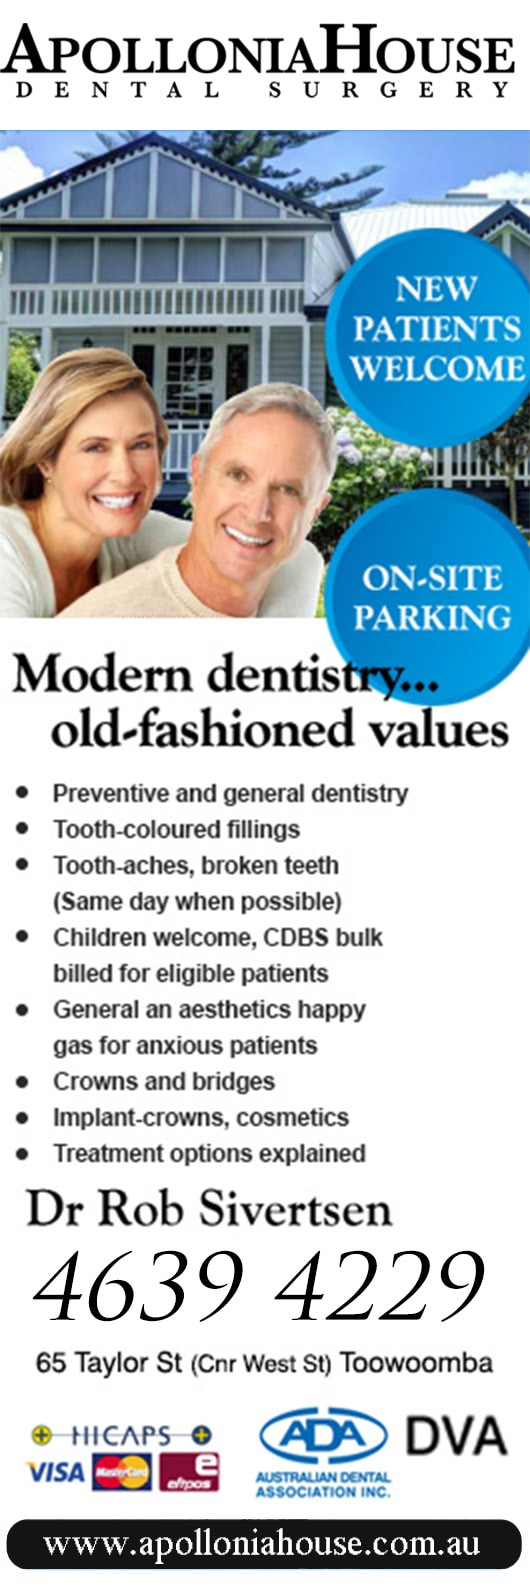 Apollonia House Dental - Dentist - 65 Taylor St Cnr West St - Toowoomba